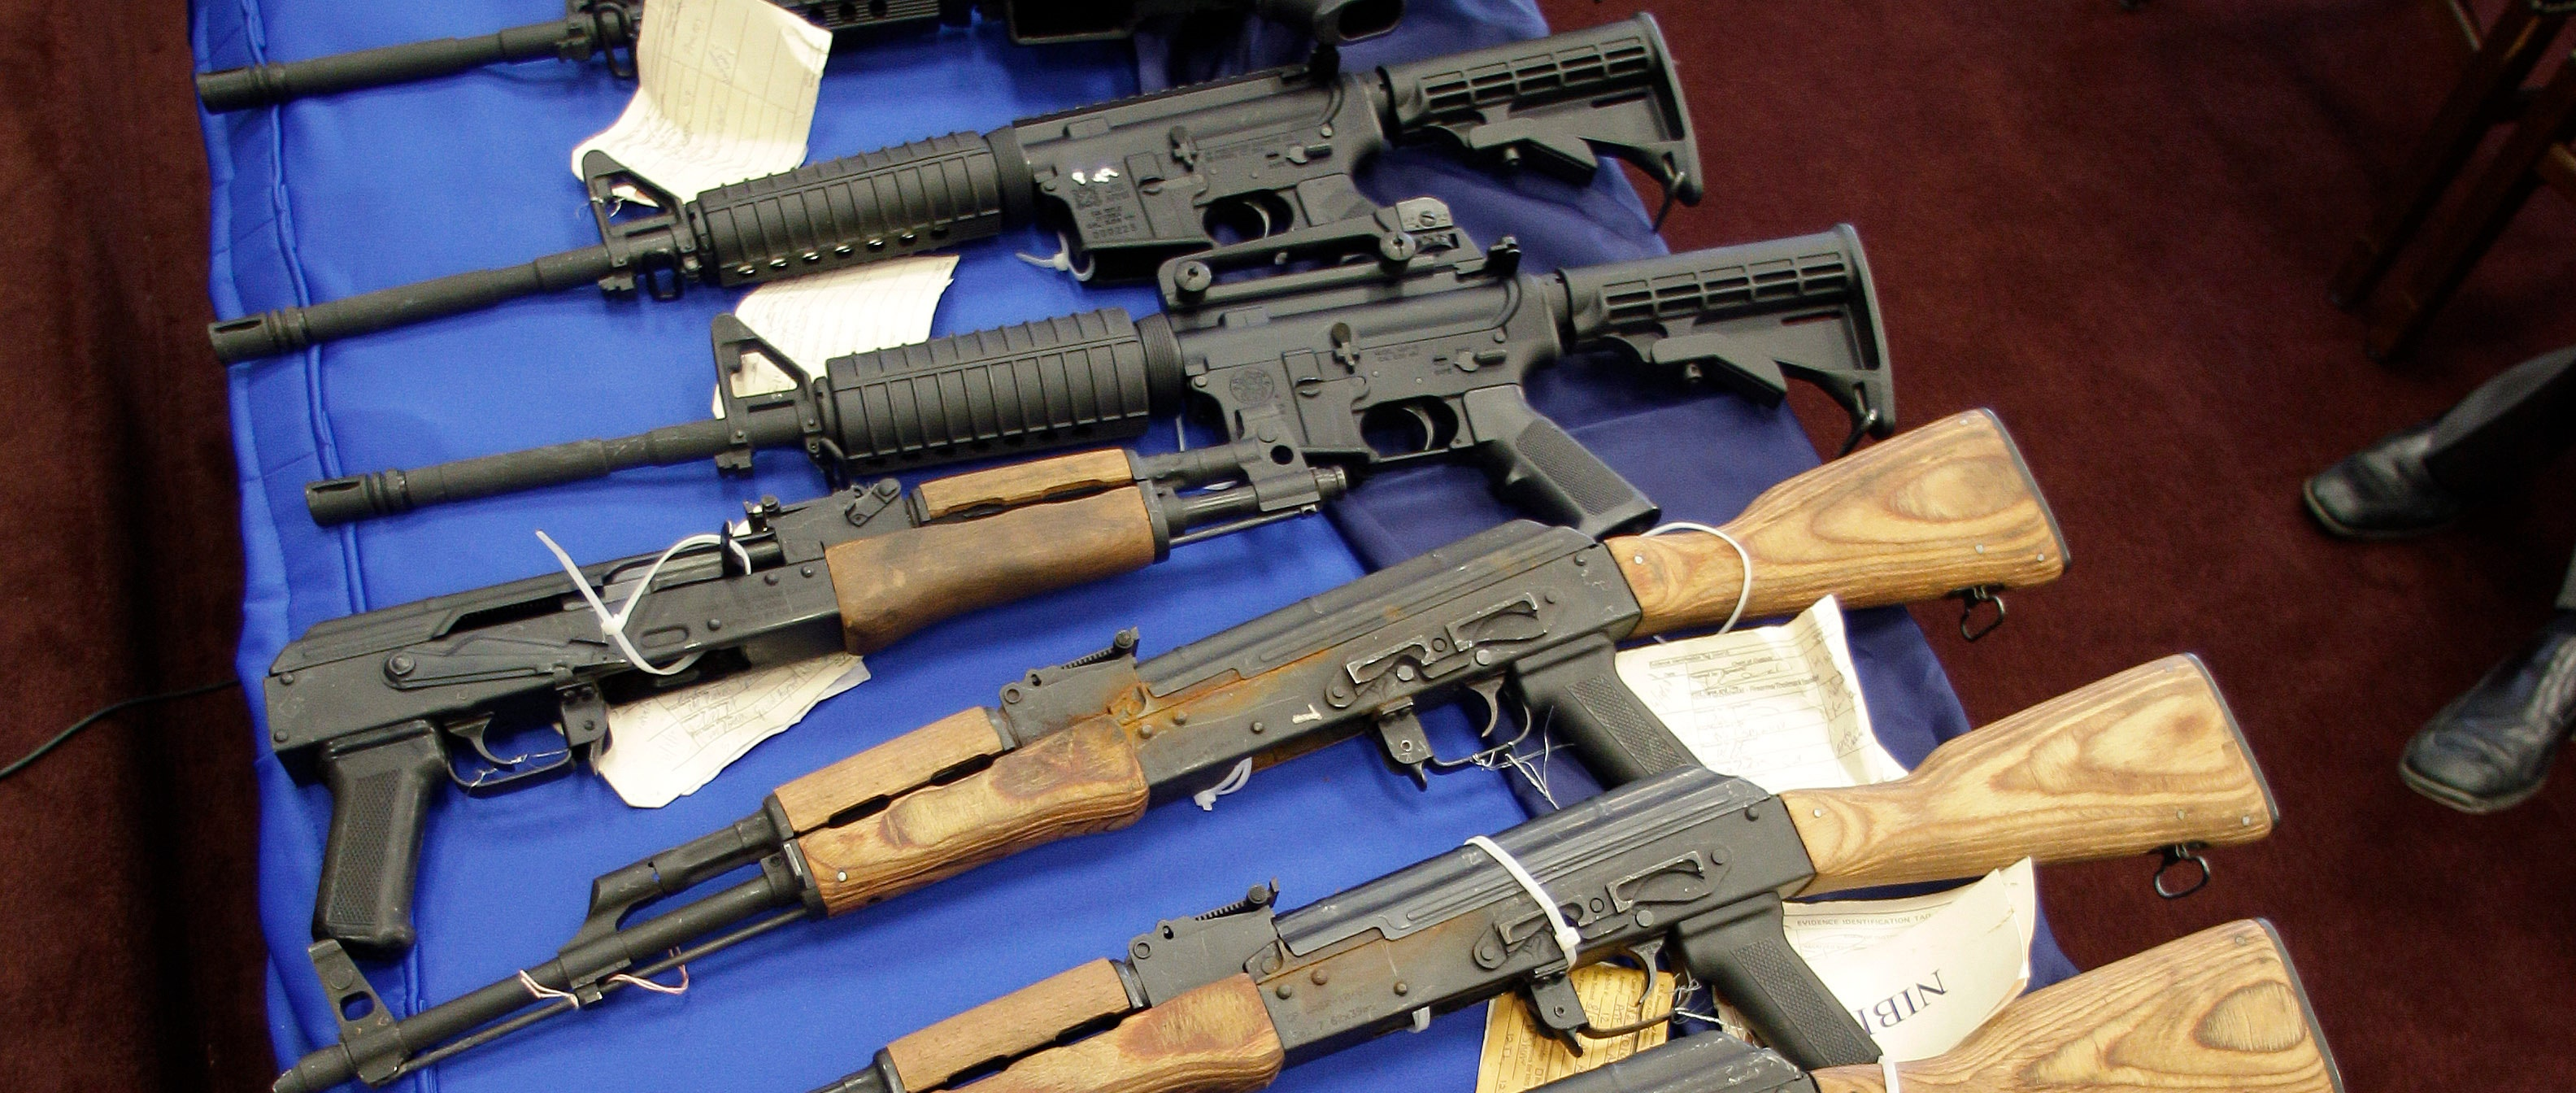 Image result for illegal weapons